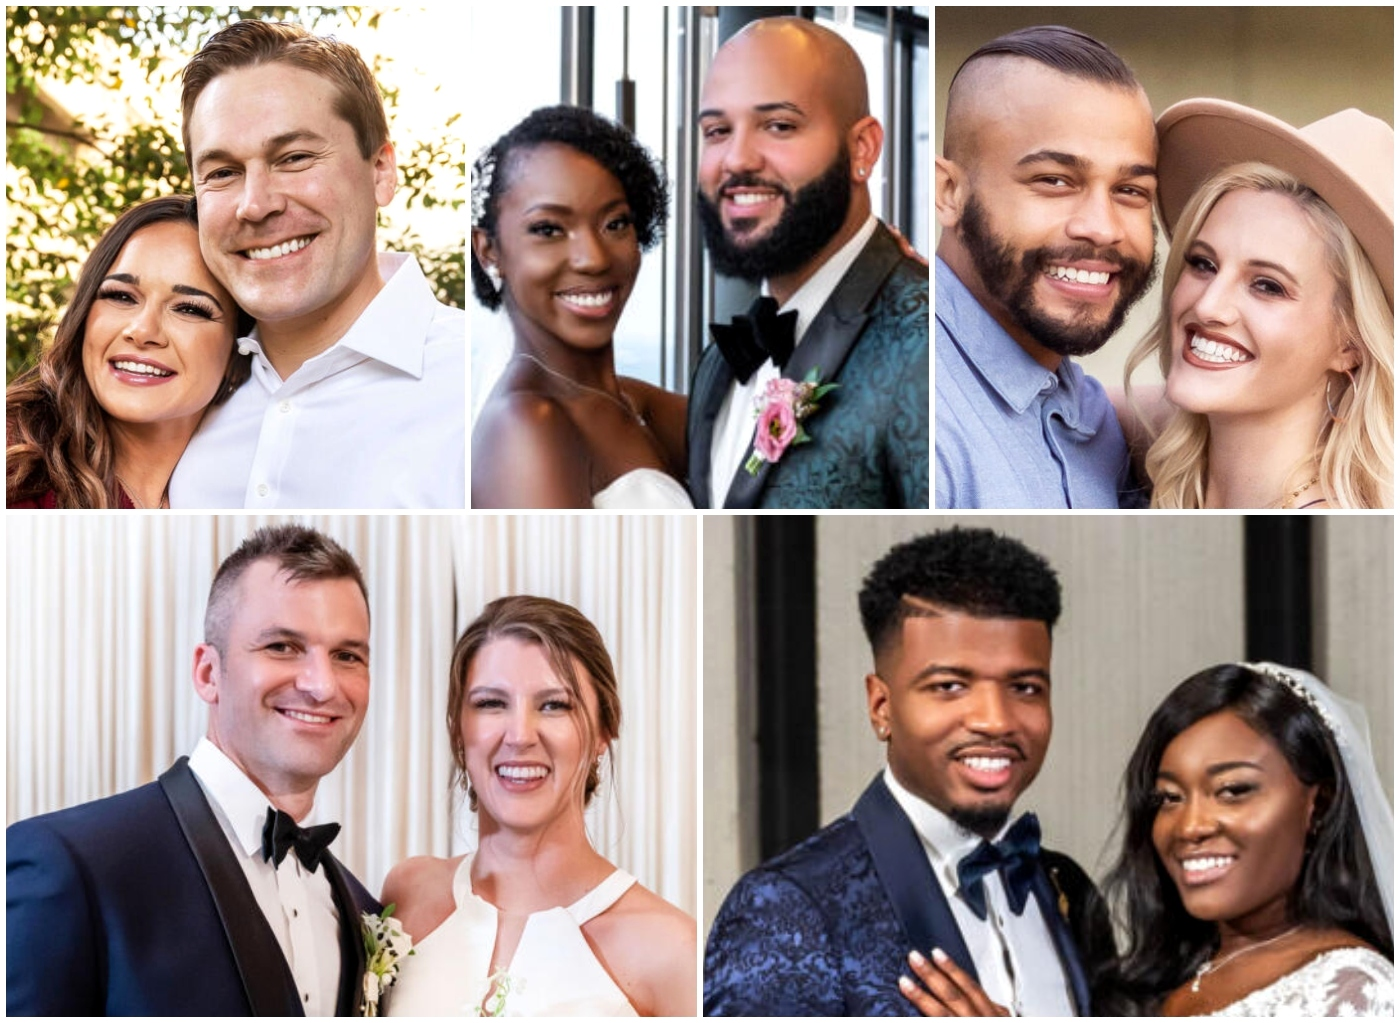 'Married at First Sight' Season 12 Update: Where Are the Couples Now? Find Out Which Are Still Together